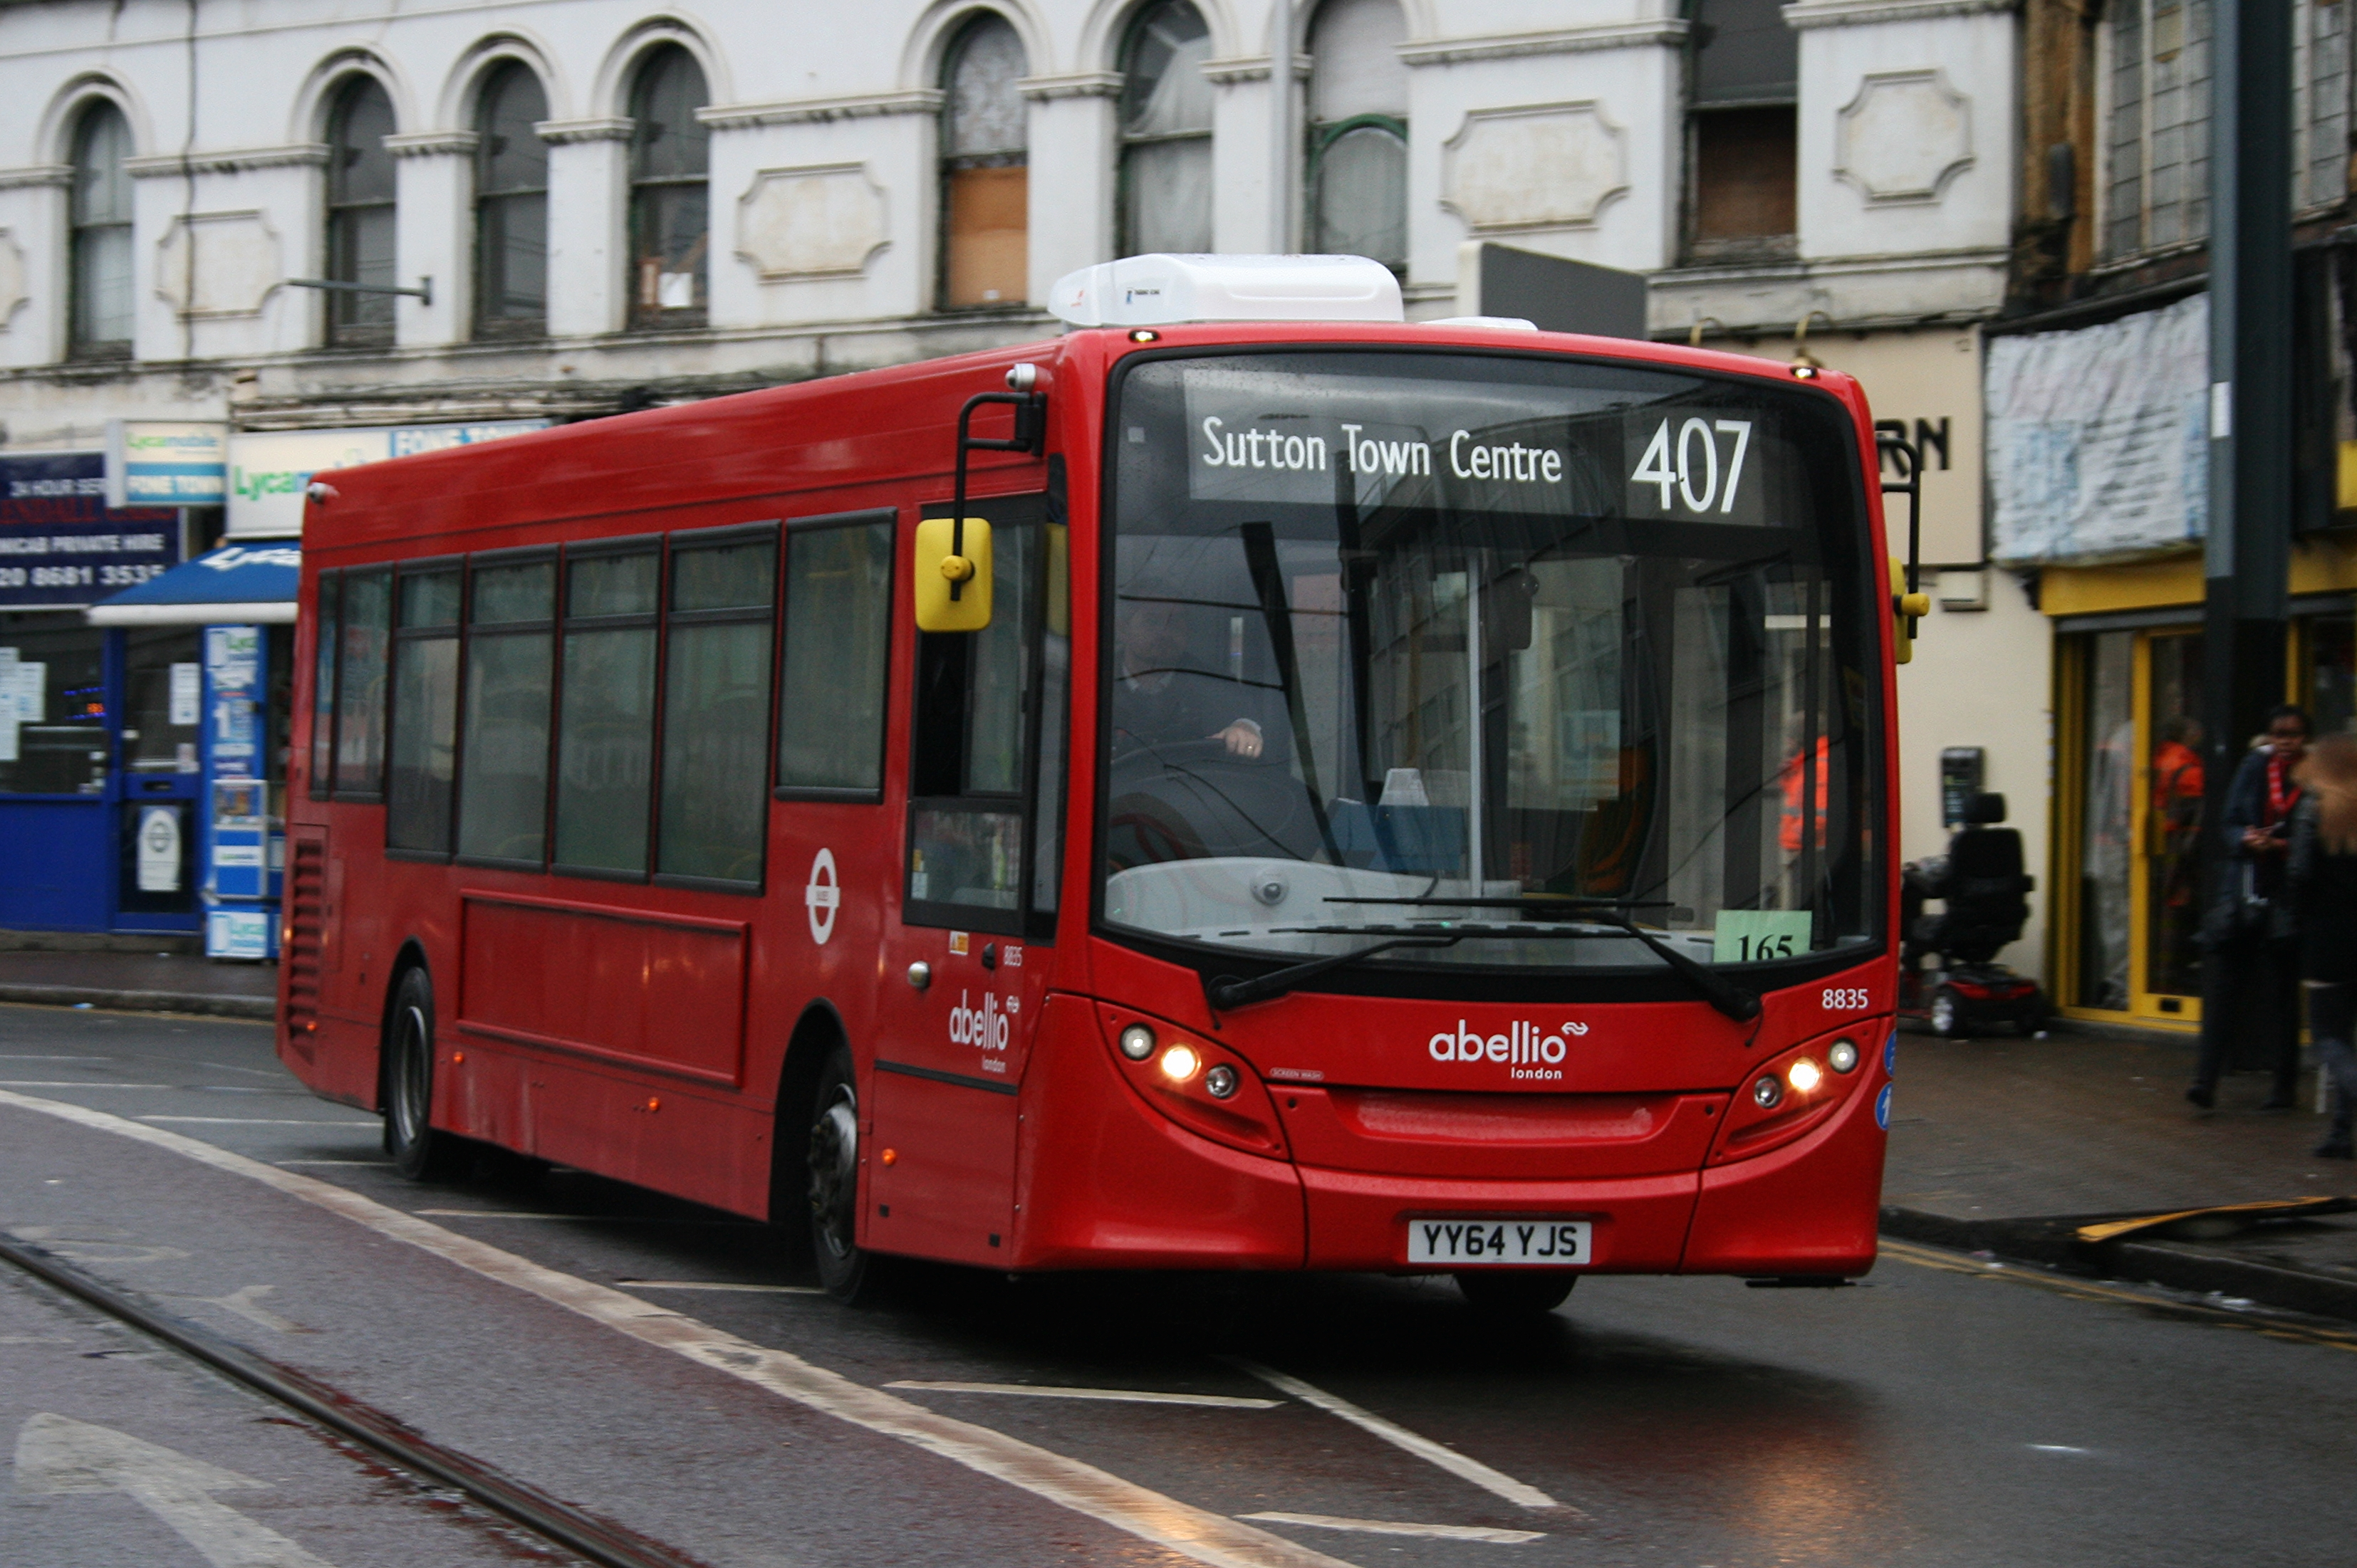 file:abellio london 8835 on route 407, west croydon (16243443409